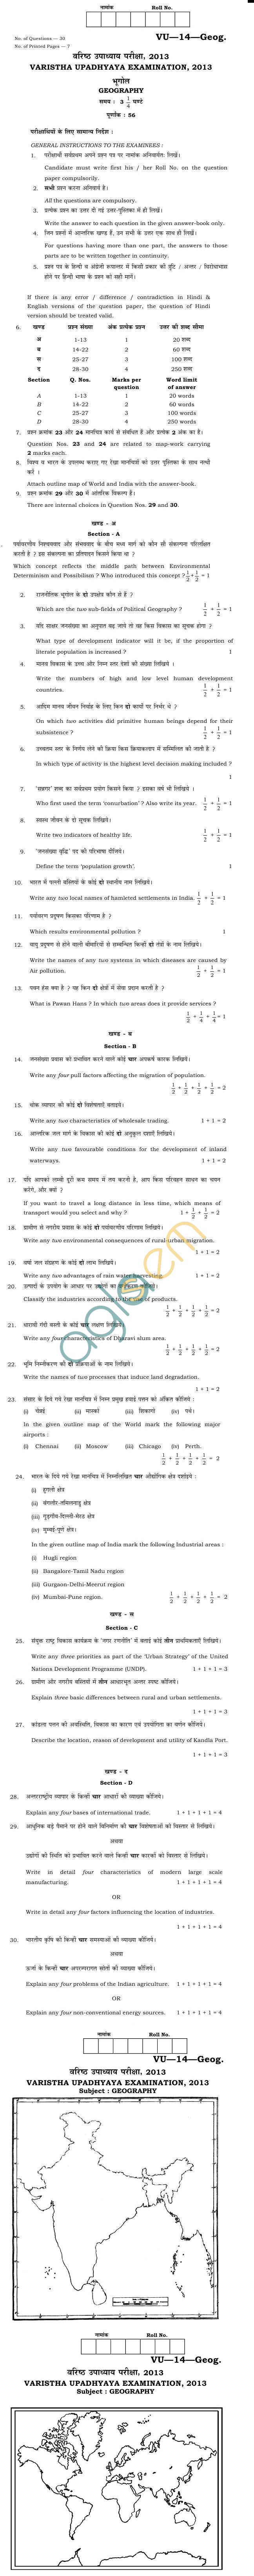 Rajasthan Board V Upadhyay Geography Question Paper 2013